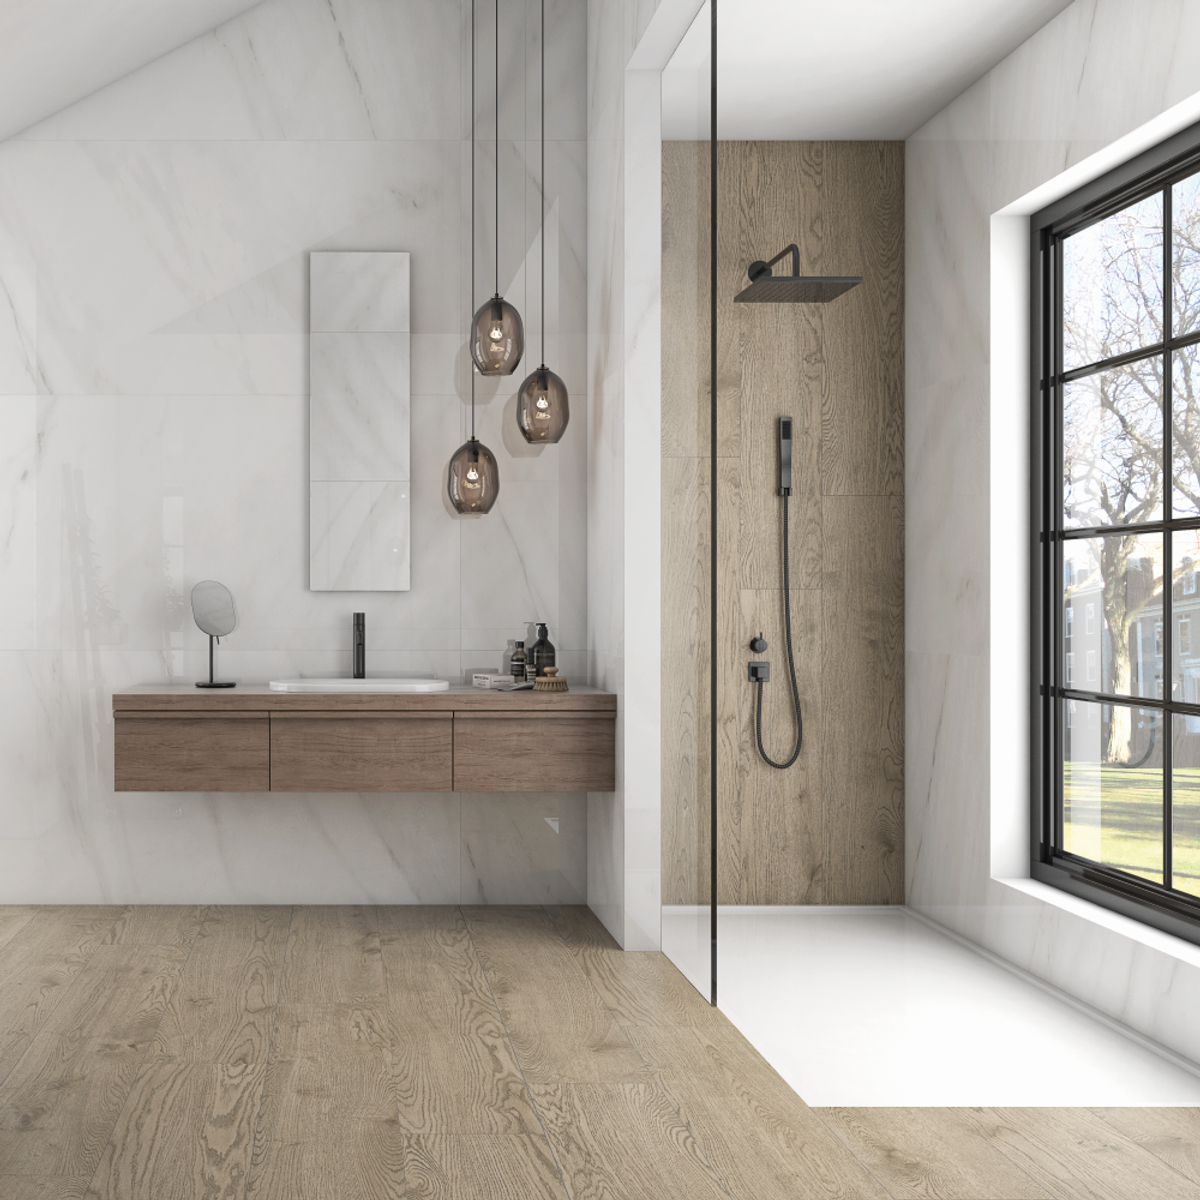 Tuscany LE RECTIFIED GLAZED PORCELAIN TILE Marble 45x90 order instore or online today @ www.tuscanytiles.co.uk